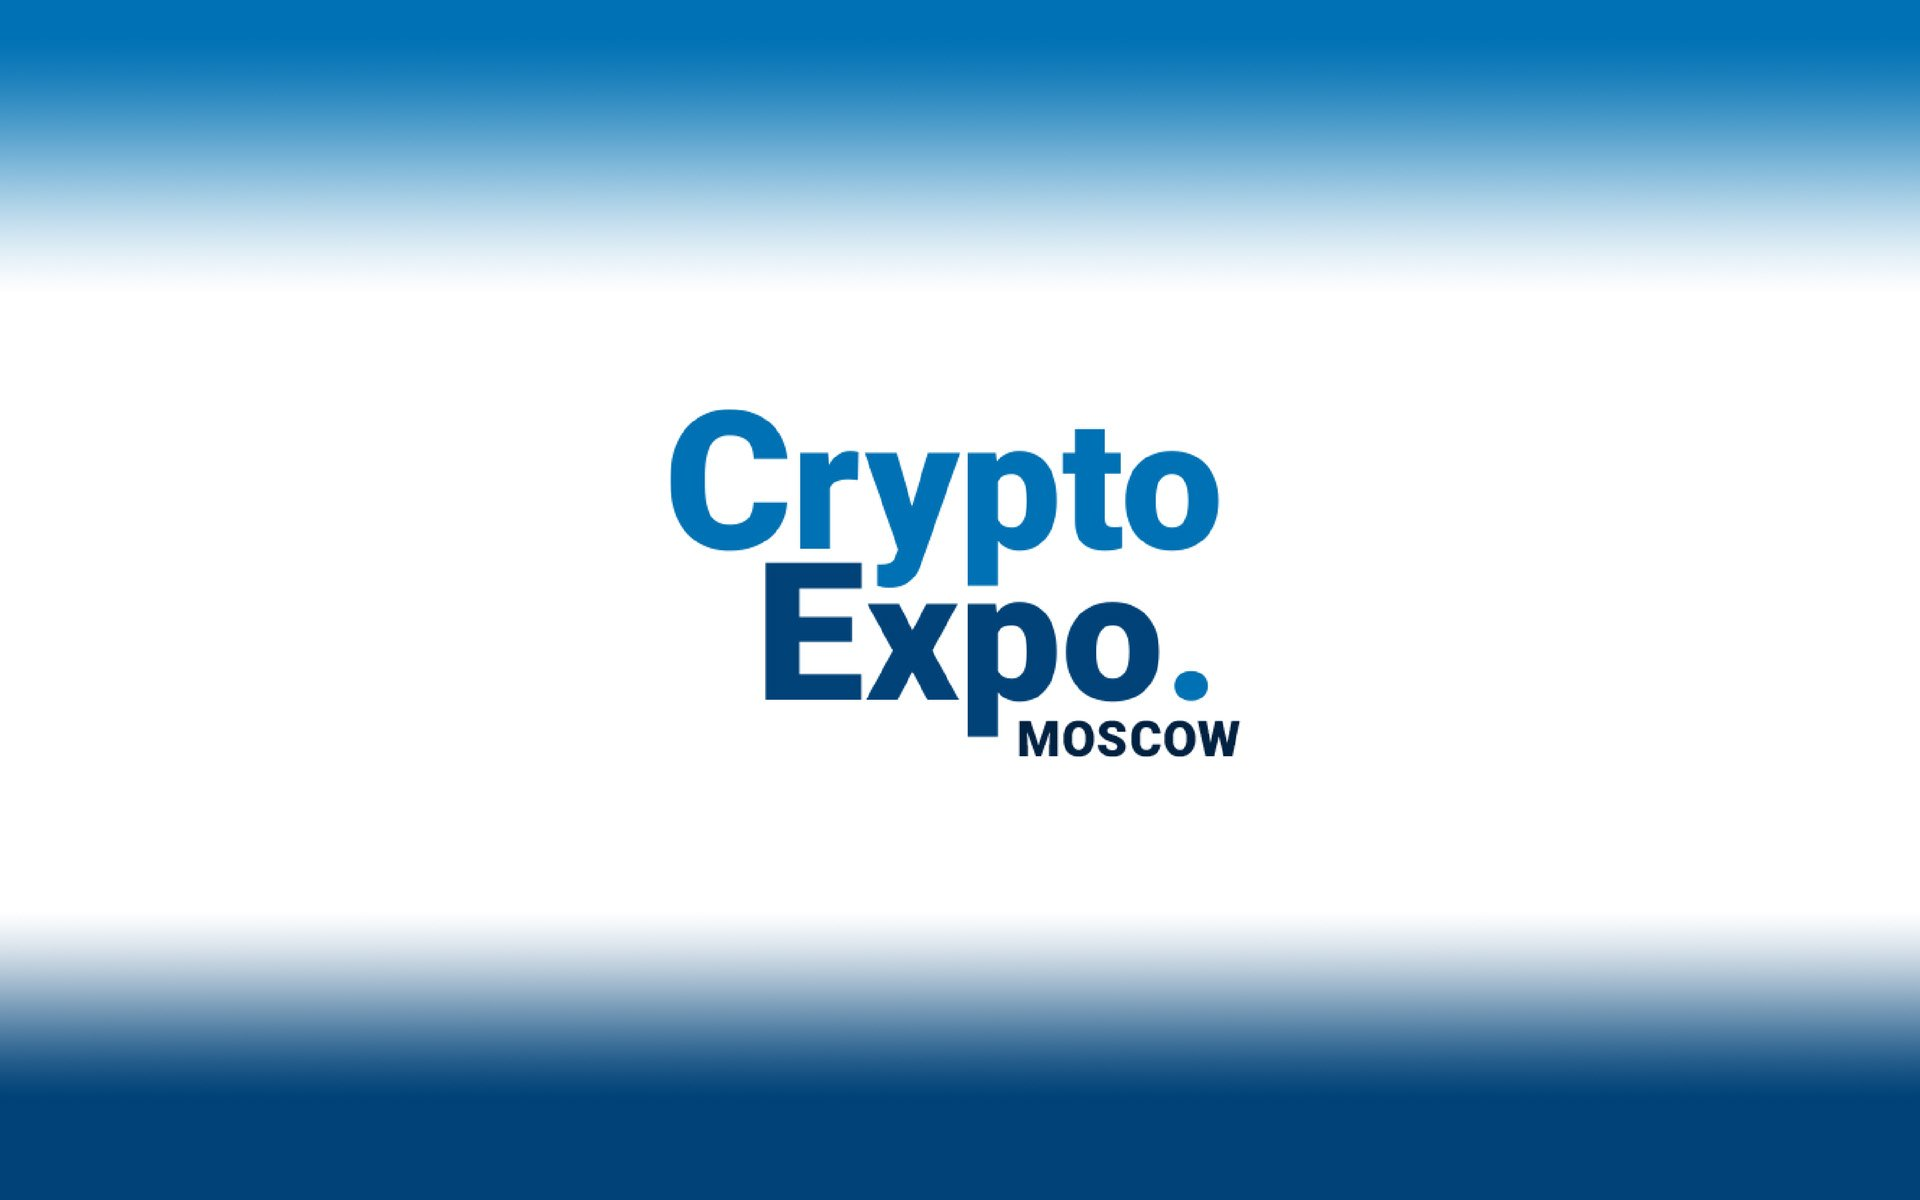 Moscow Opens the Doors of the Mysterious World of Blockchain as Crypto Expo Moscow Goes Live in May 2018